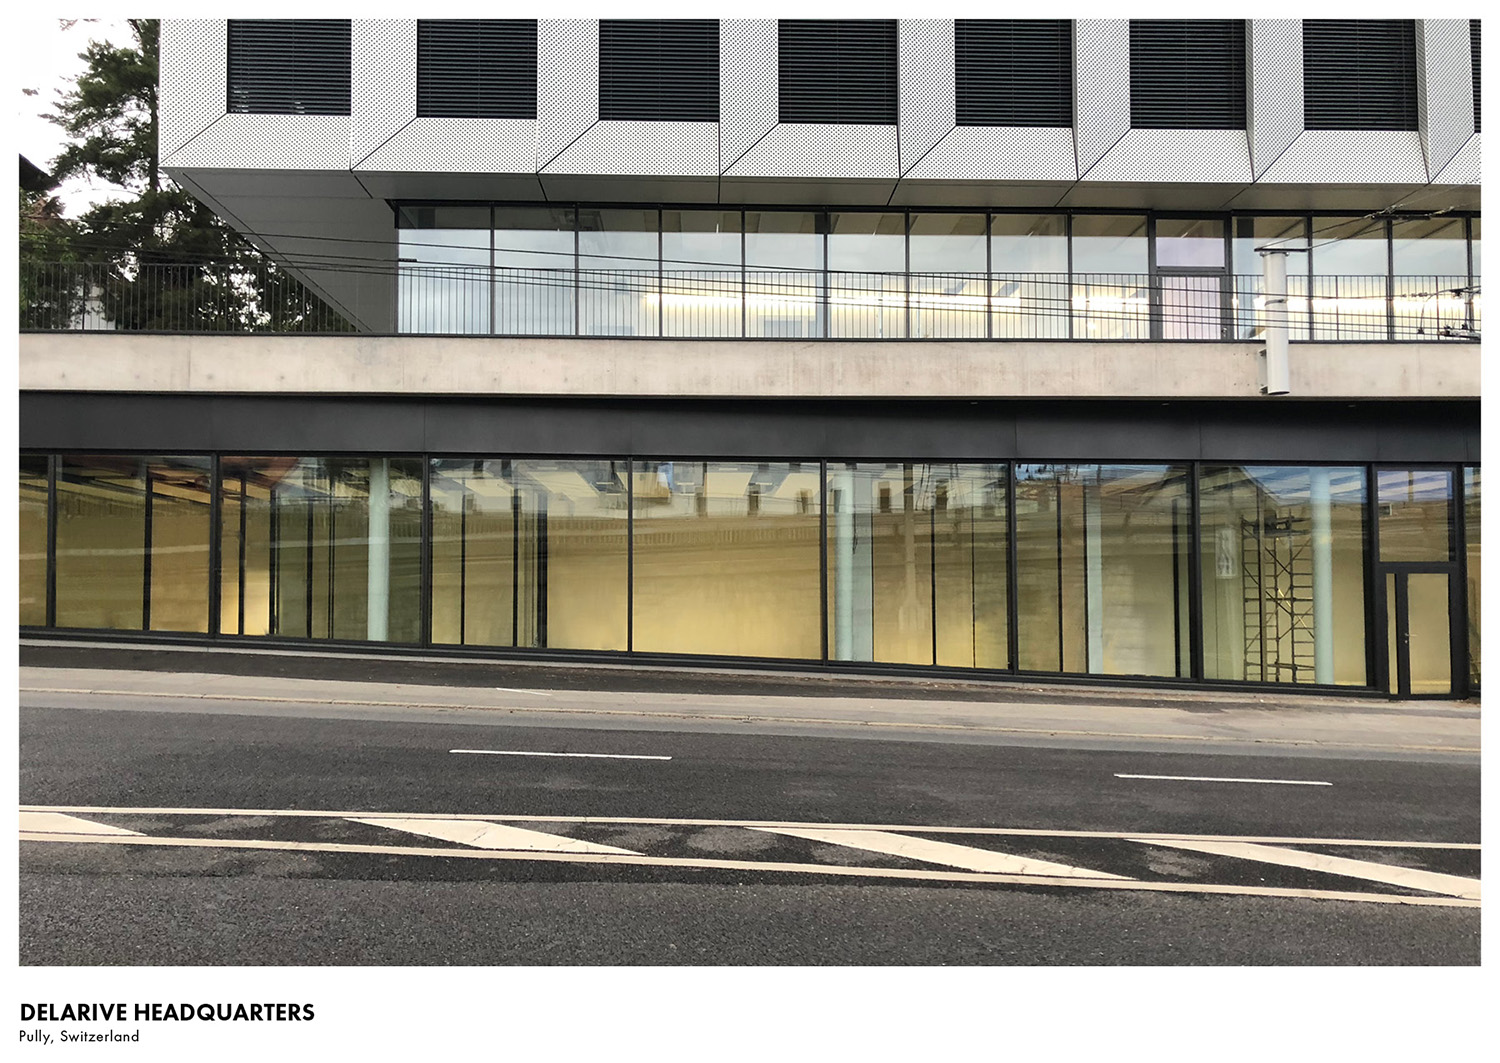 Situated on the ground level of an existing office building, the concept for the company's new headquarters is a 'building within a building'. Delphine Burtin}